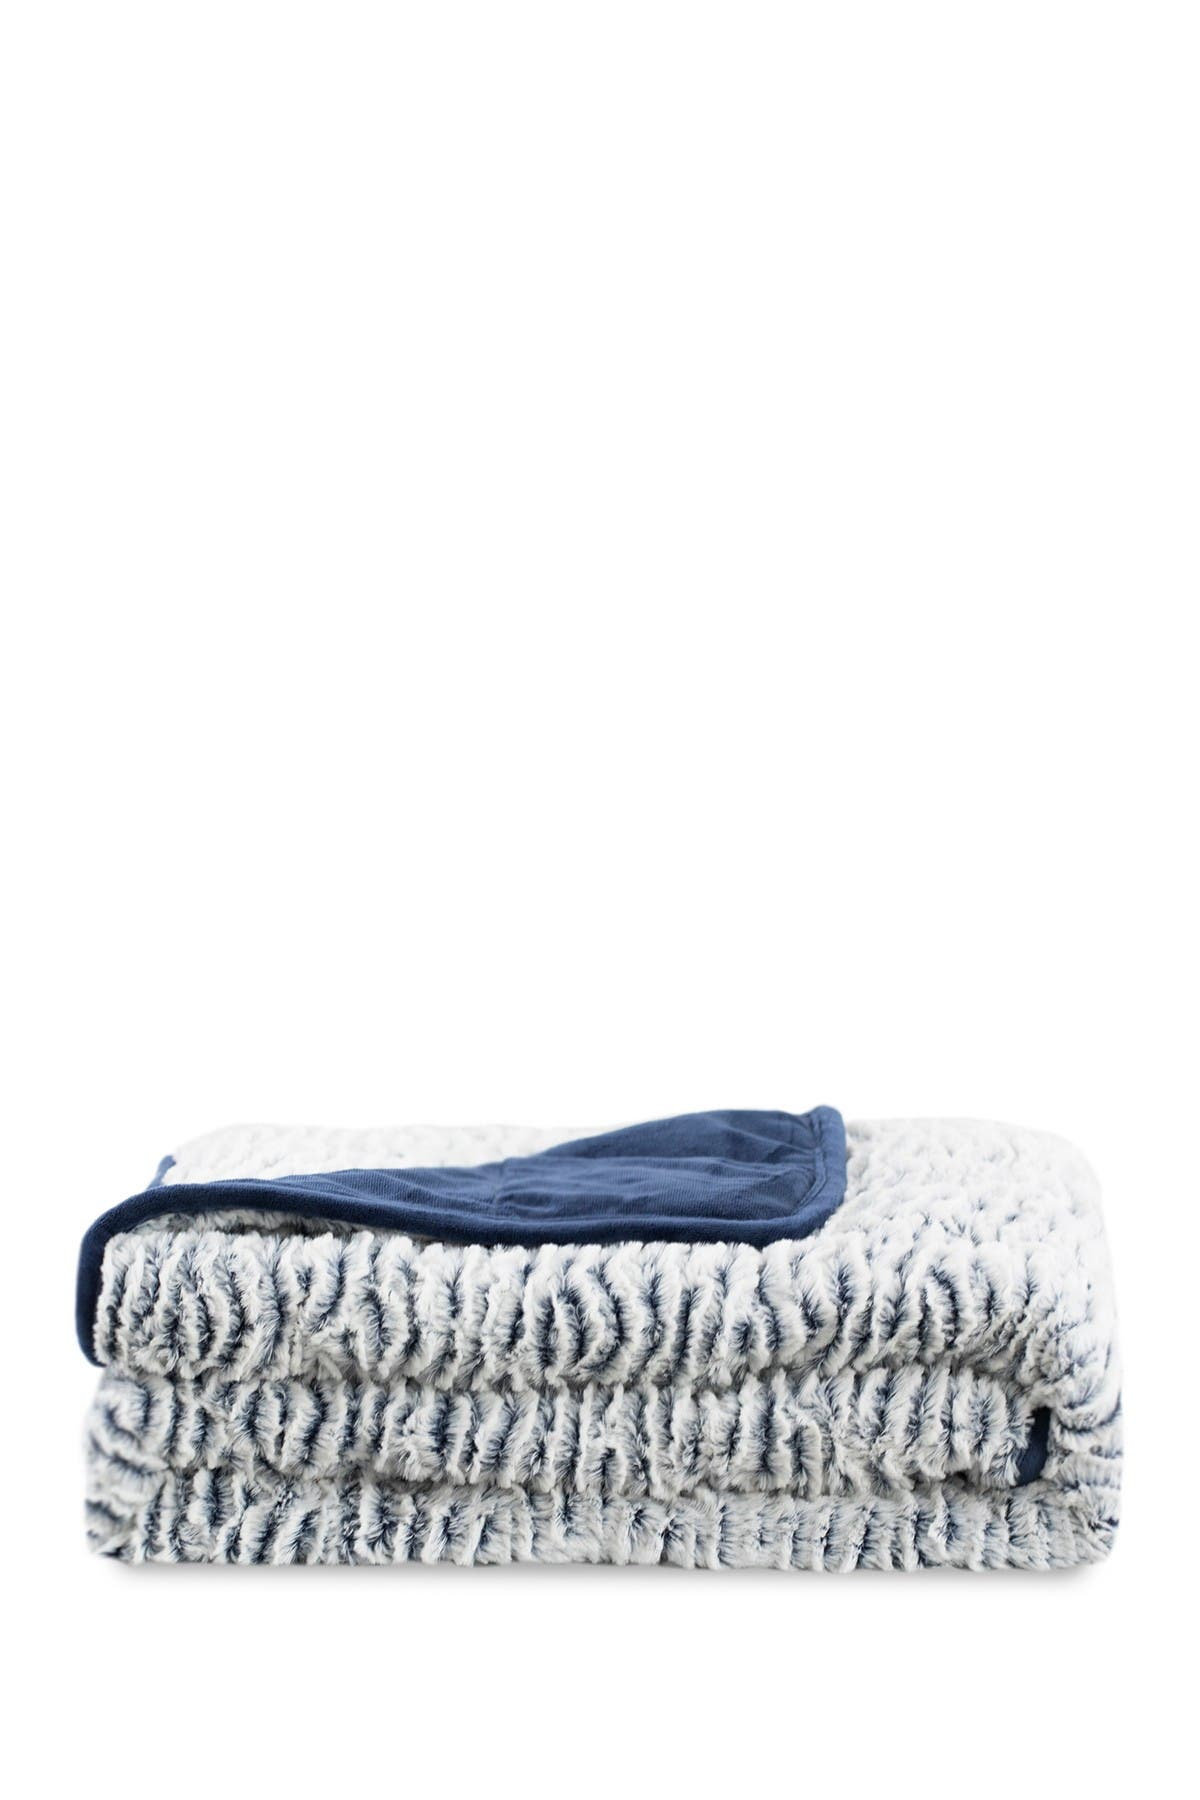 Image of DREAM THEORY Navy Fleece Faux Fur 10lb Weighted Blanket